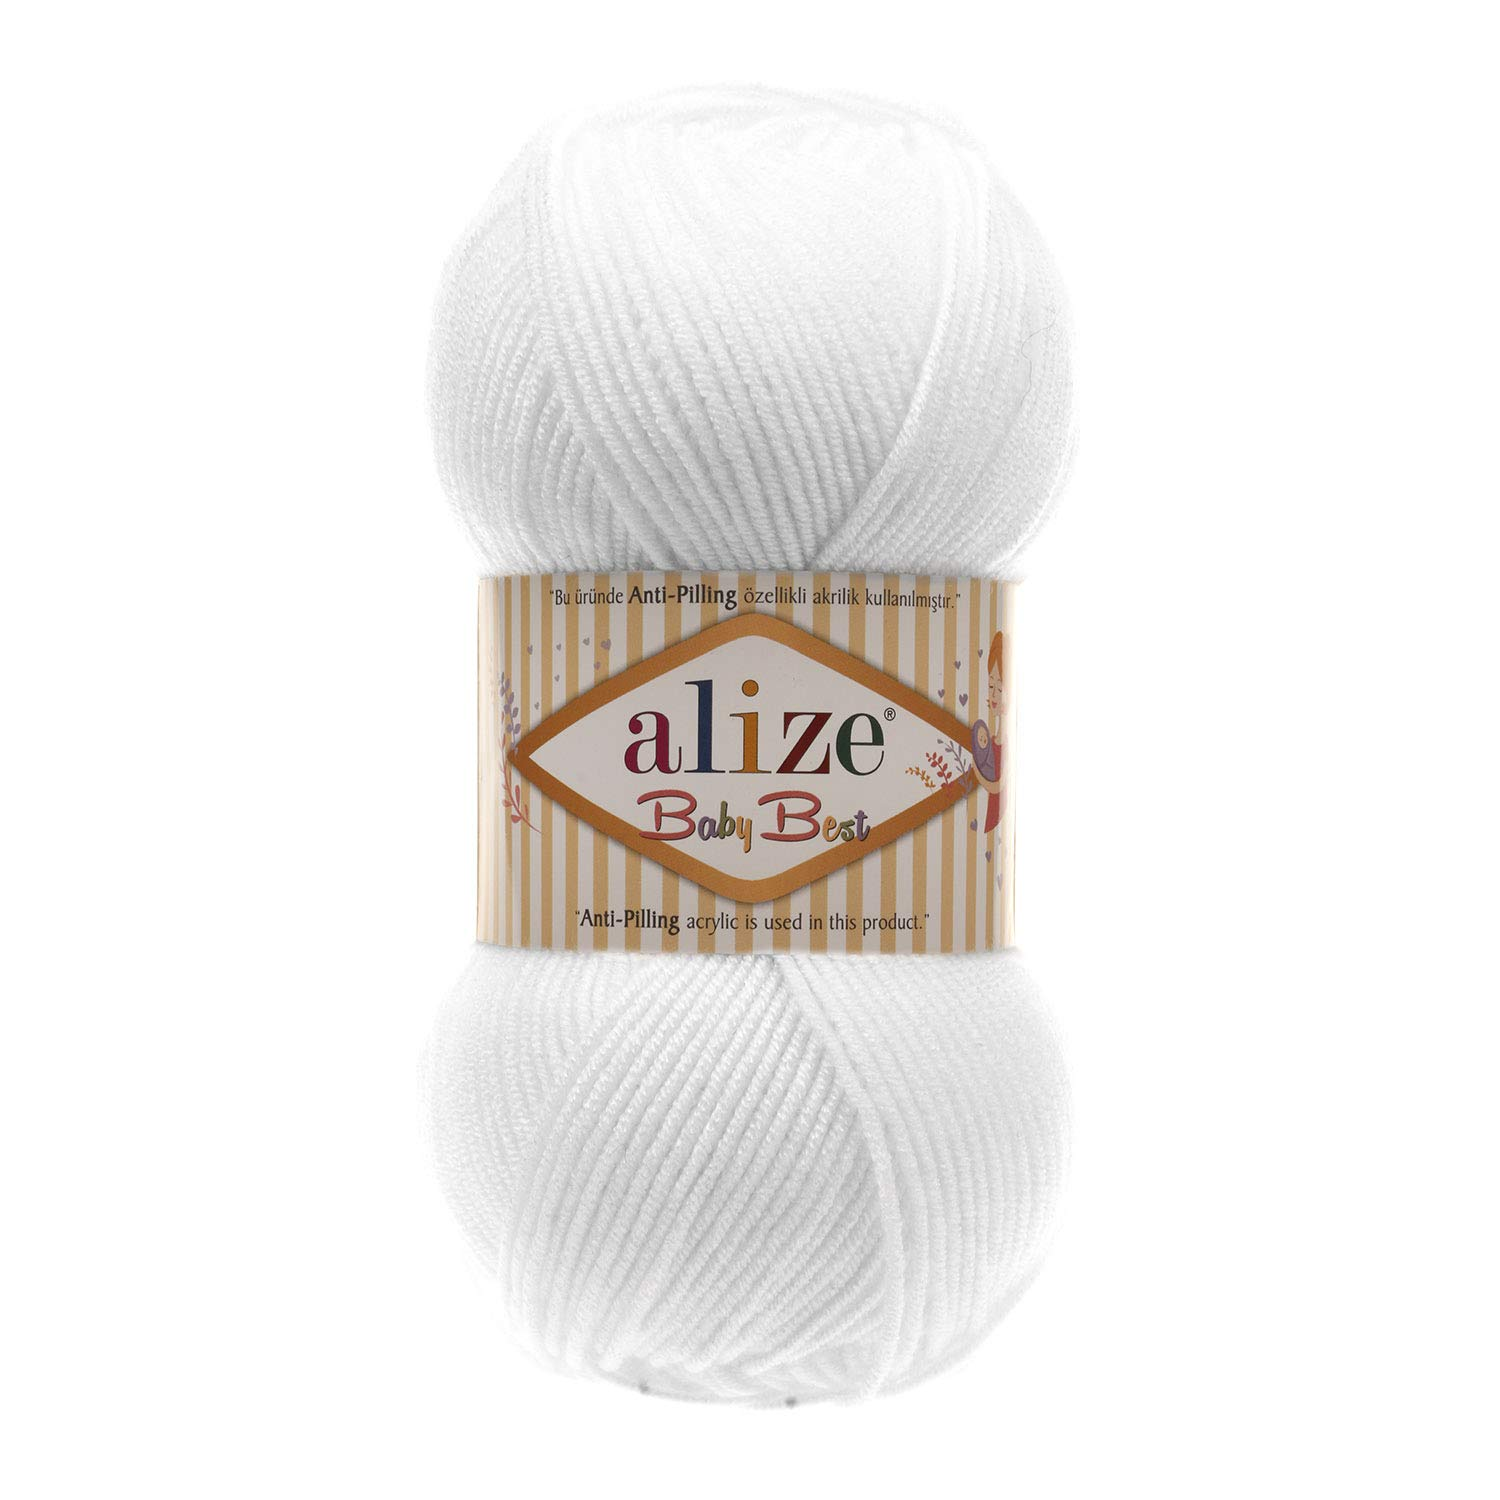 90% Acrylic Soft Wool 10% Bamboo Yarn for Hand Knitting Alize Baby Best Crochet Lace Embroidery Art Craft Sewing Kit Baby Blanket Yarn Lot of 4skn 400gr 1400yds Color 55 White